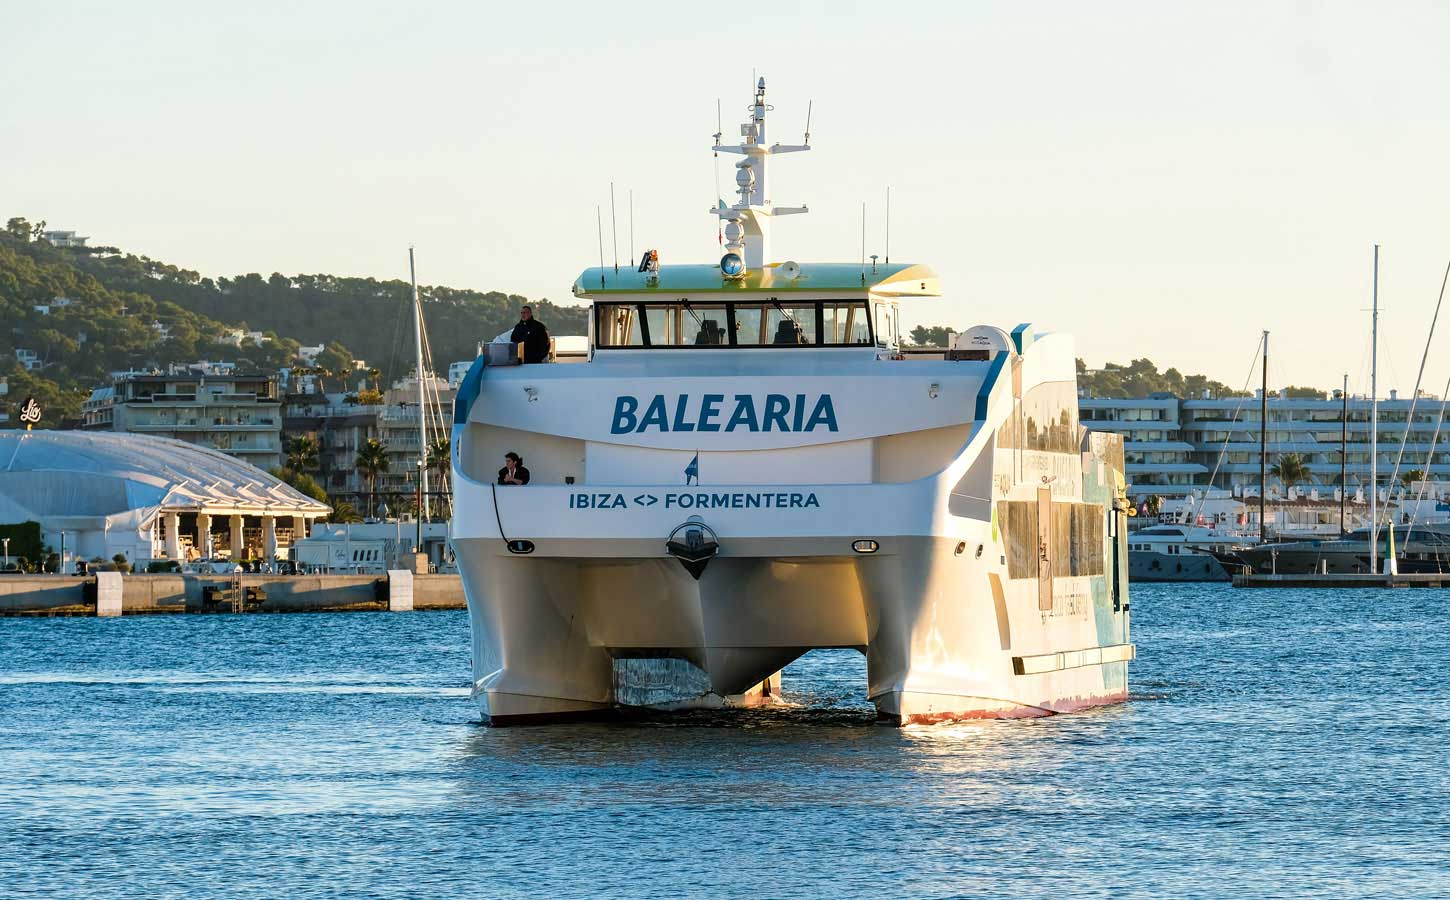 Balearia Eco Aire ferry